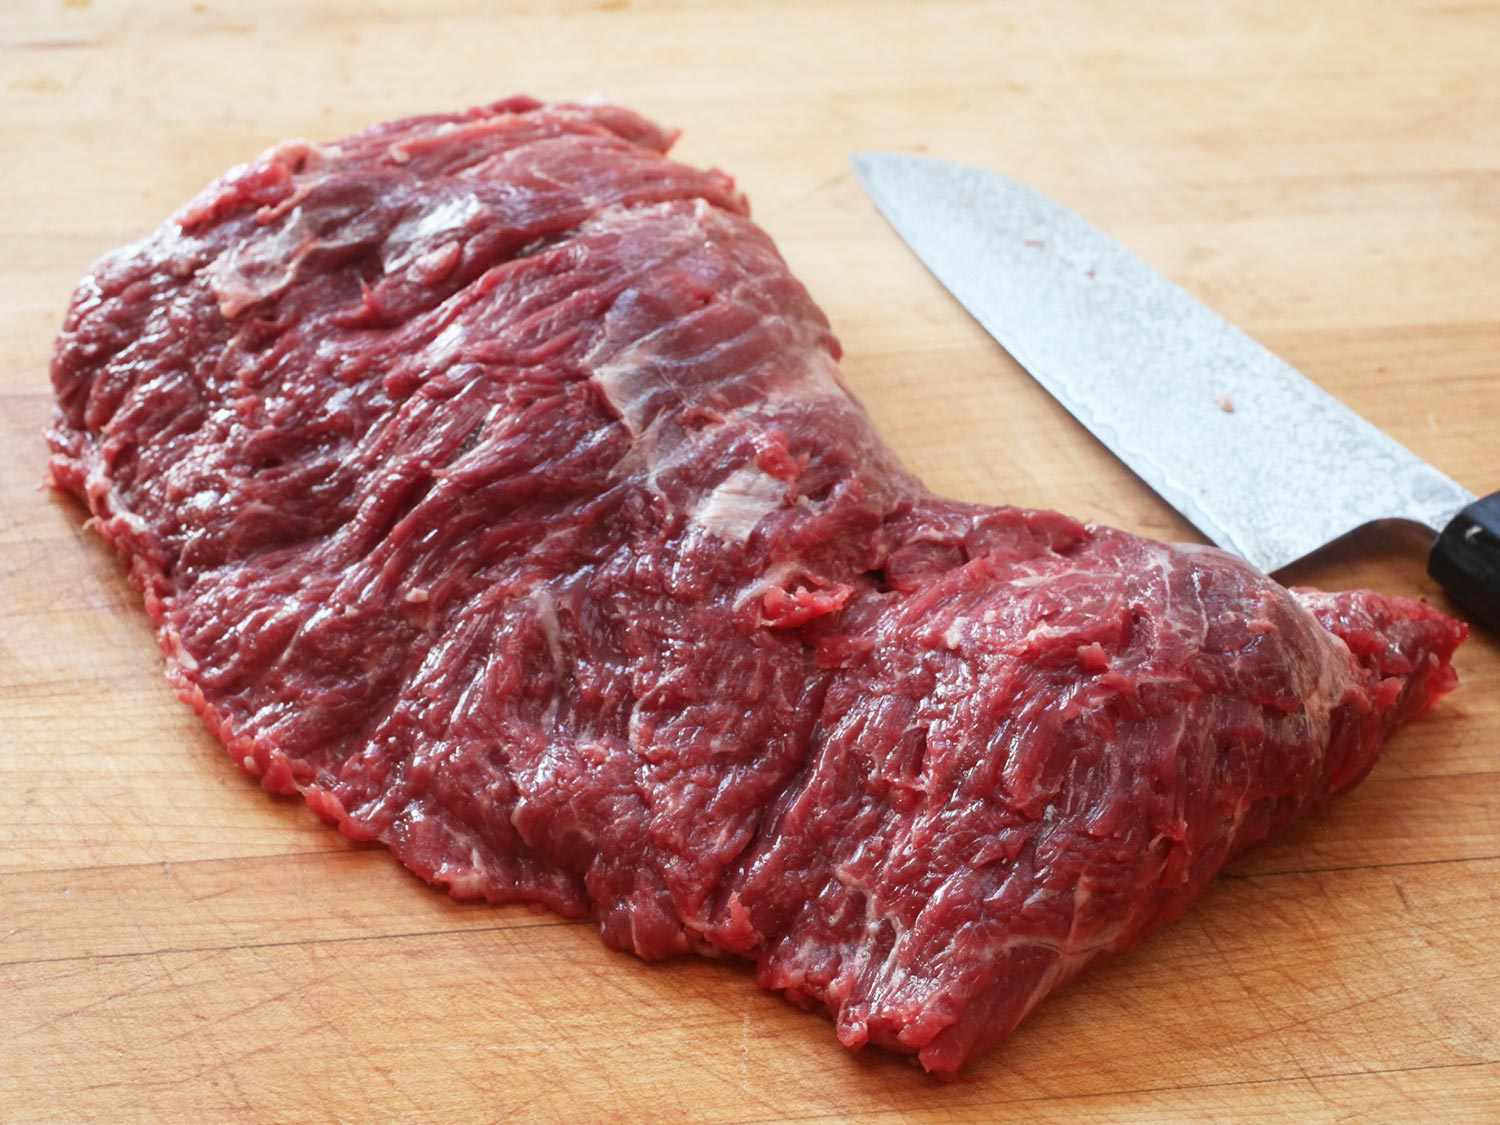 Raw flap meat steak on a wooden cutting board with a knife in the background.